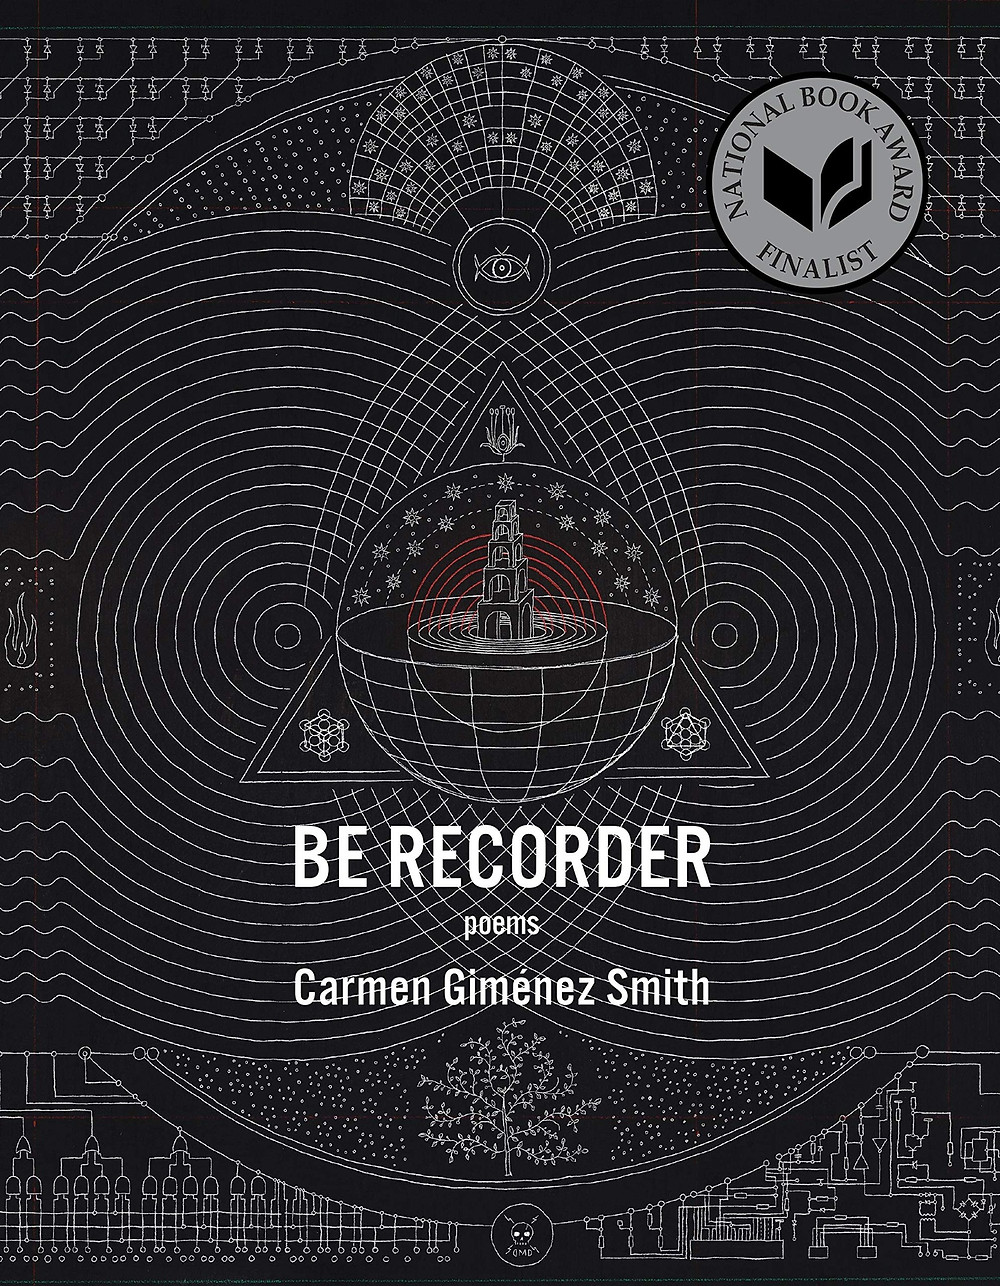 Be Recorder By Carmen Giménez Smith 88 pages. 2019. The Book Slut book reviews poetry reviews, poetry authors, Latinx authors Latinx poets thebookslut